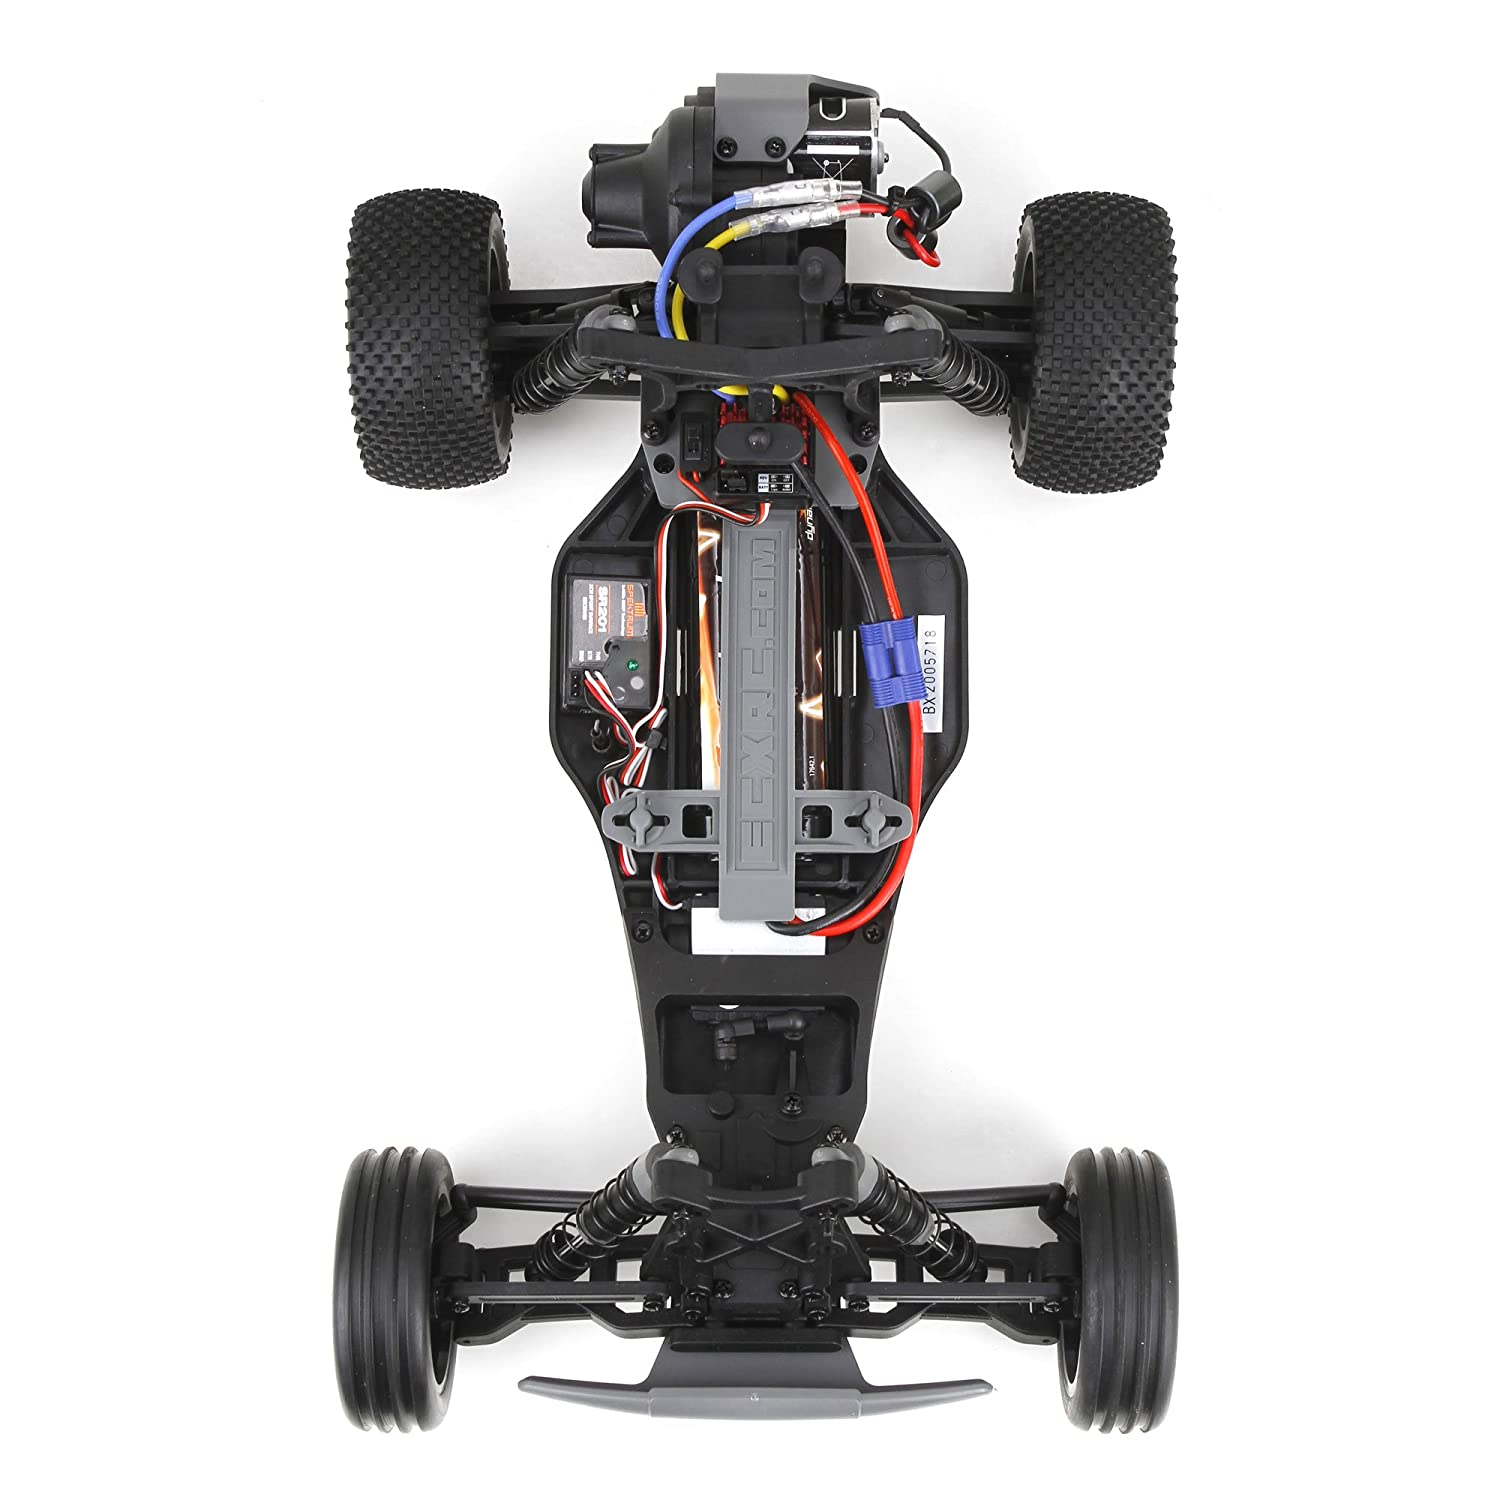 Amazon.com: ECX Boost 2WD RTR Buggy (1/10 Scale), White/Red: Toys ...